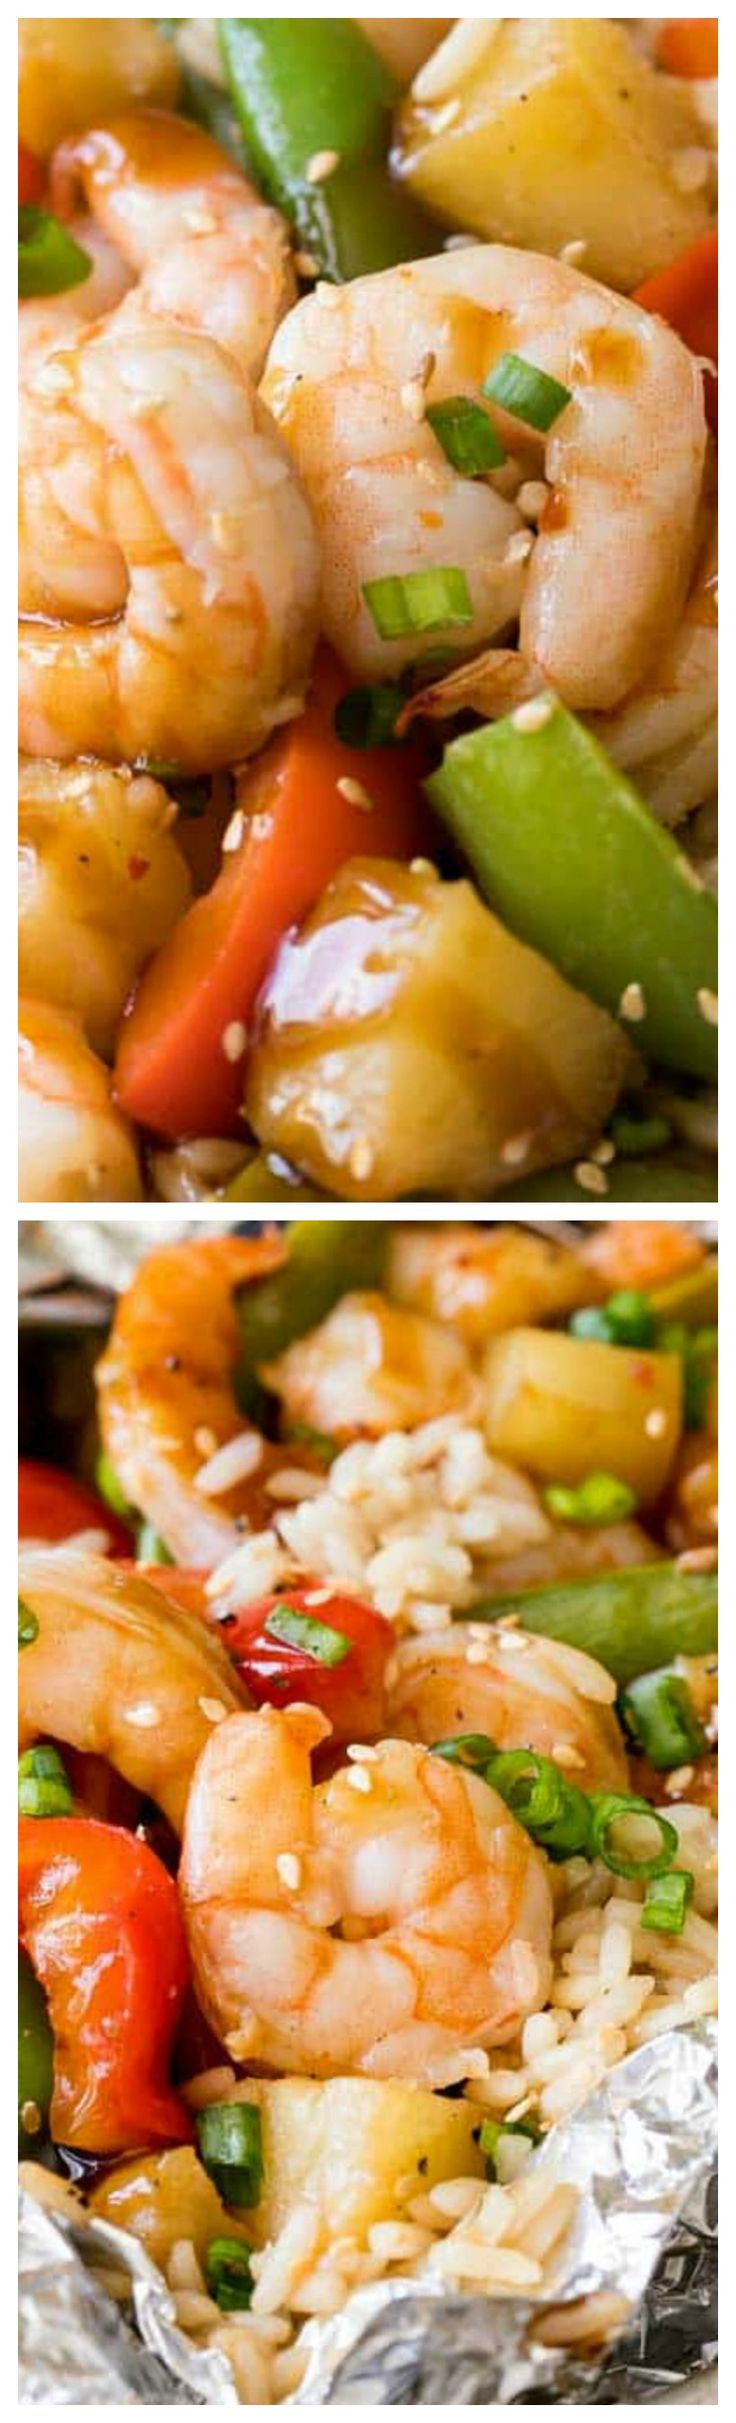 Pineapple Teriyaki Shrimp Foil Packets ~ Quick and easy with little clean up... Tender crisp vegetables, succulent shrimp & juicy pineapple grilled in a sweet teriyaki sauce.